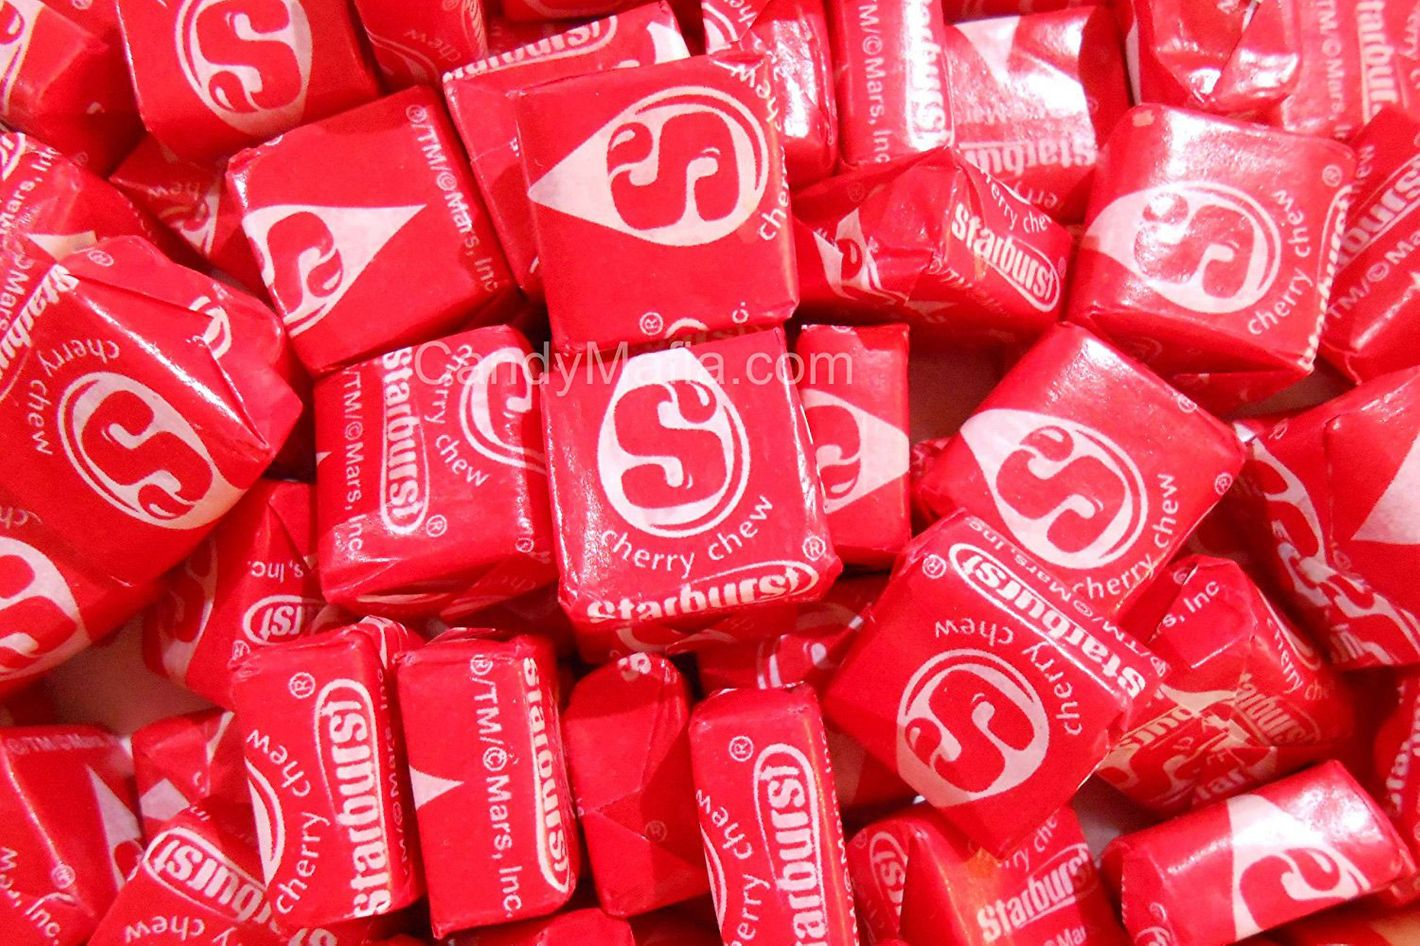 One Pound of Starburst Cherry